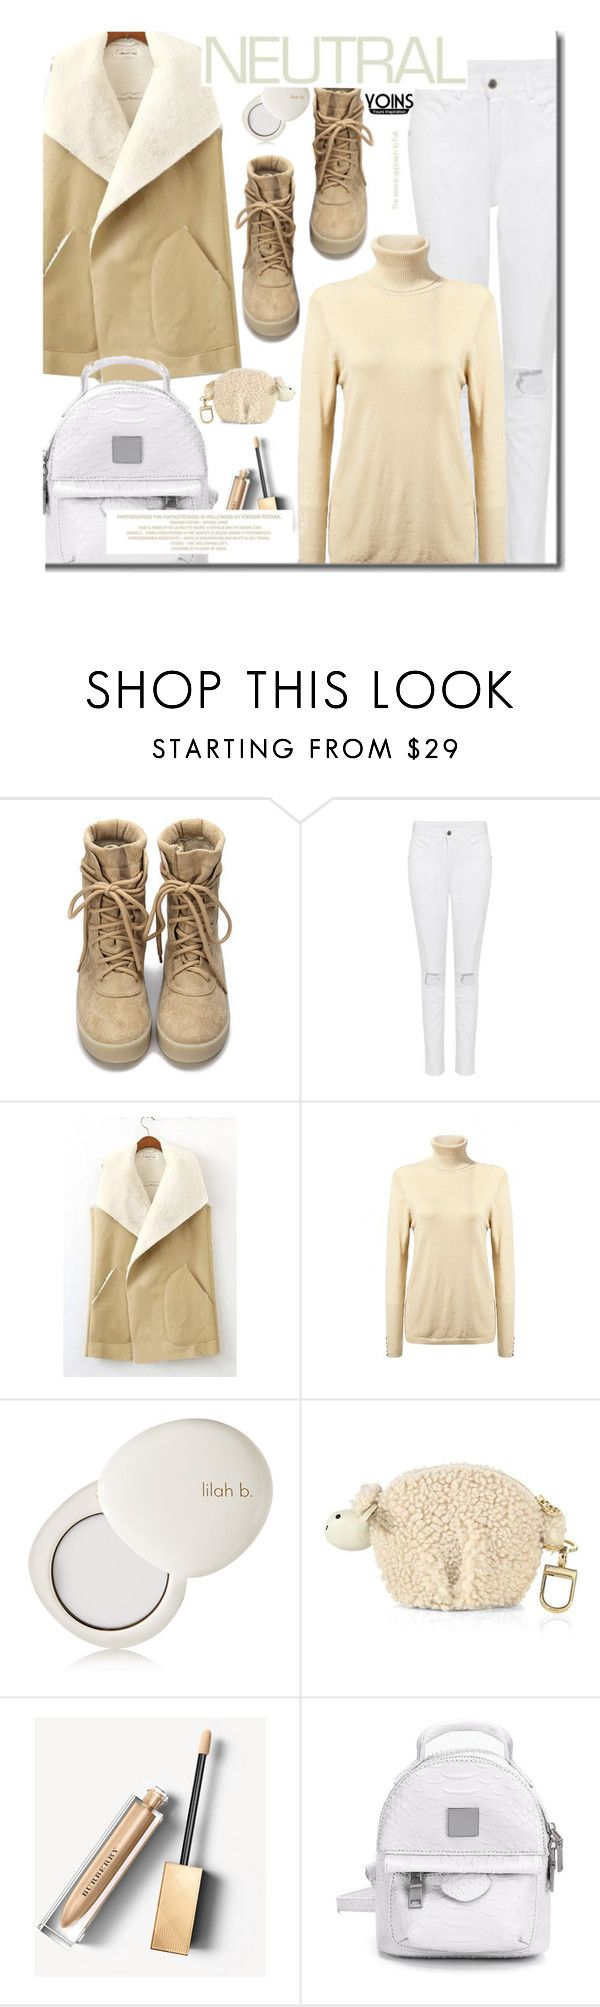 """""""Yoins Cool Neutrals"""" by beebeely-look ❤ liked on Polyvore featuring lilah b., Tory Burch, Burberry, Sweater, neutrals, backpacks, falltrend and yoinscollection"""